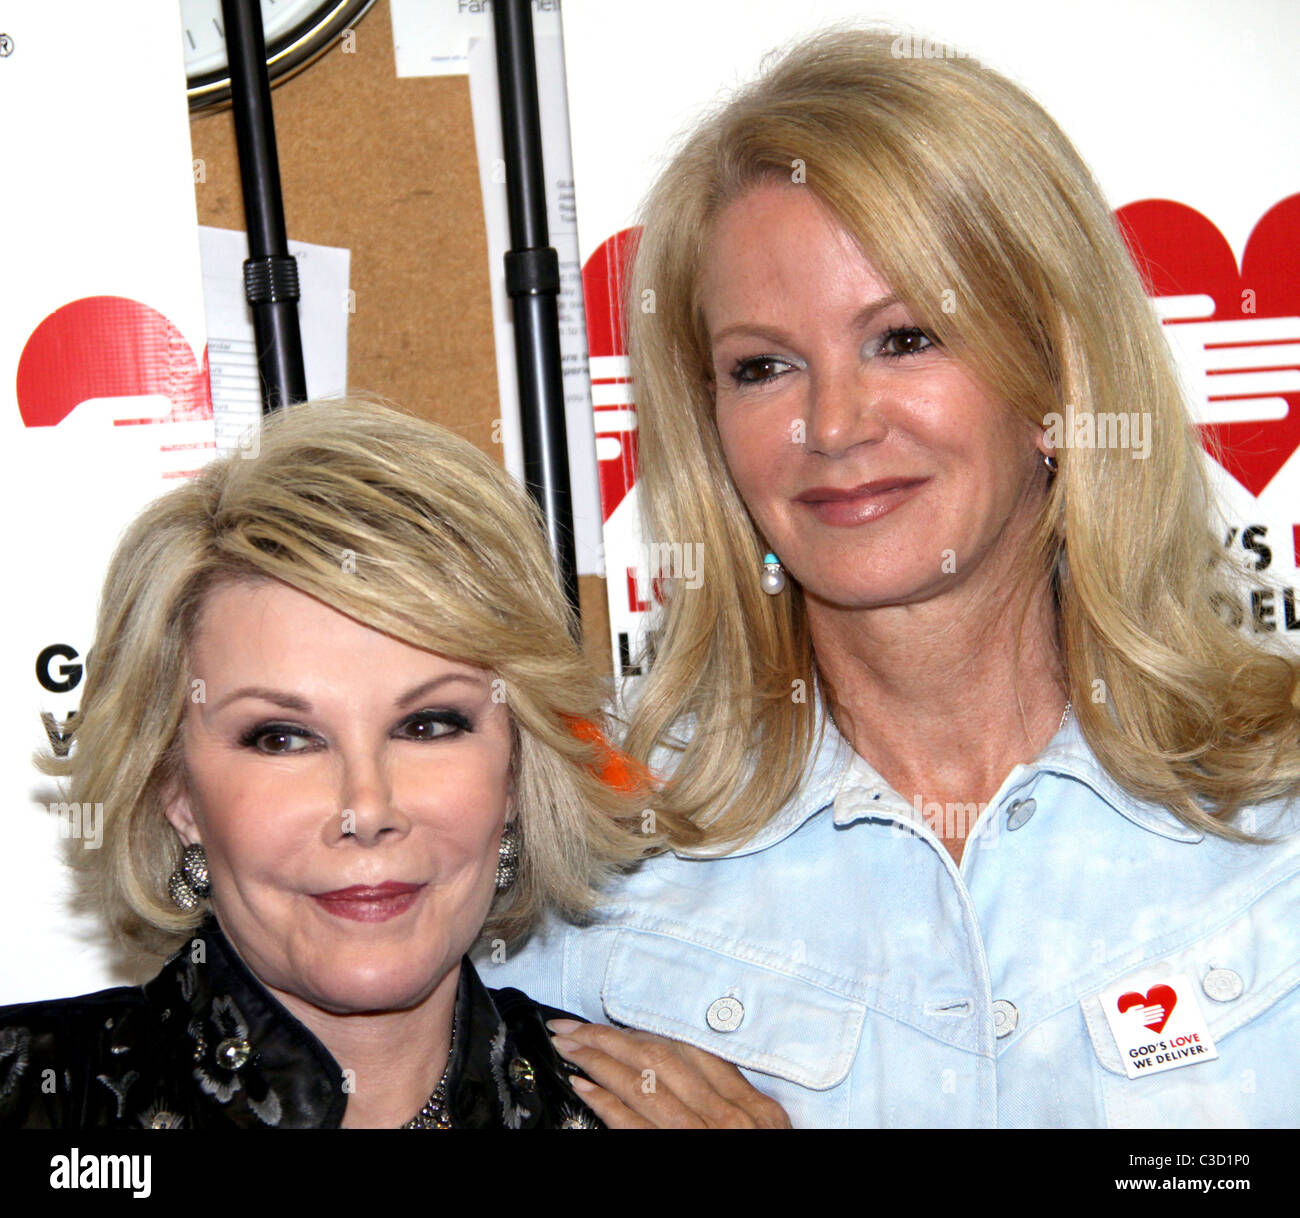 Discussion on this topic: Fergie (singer), carol-huston/